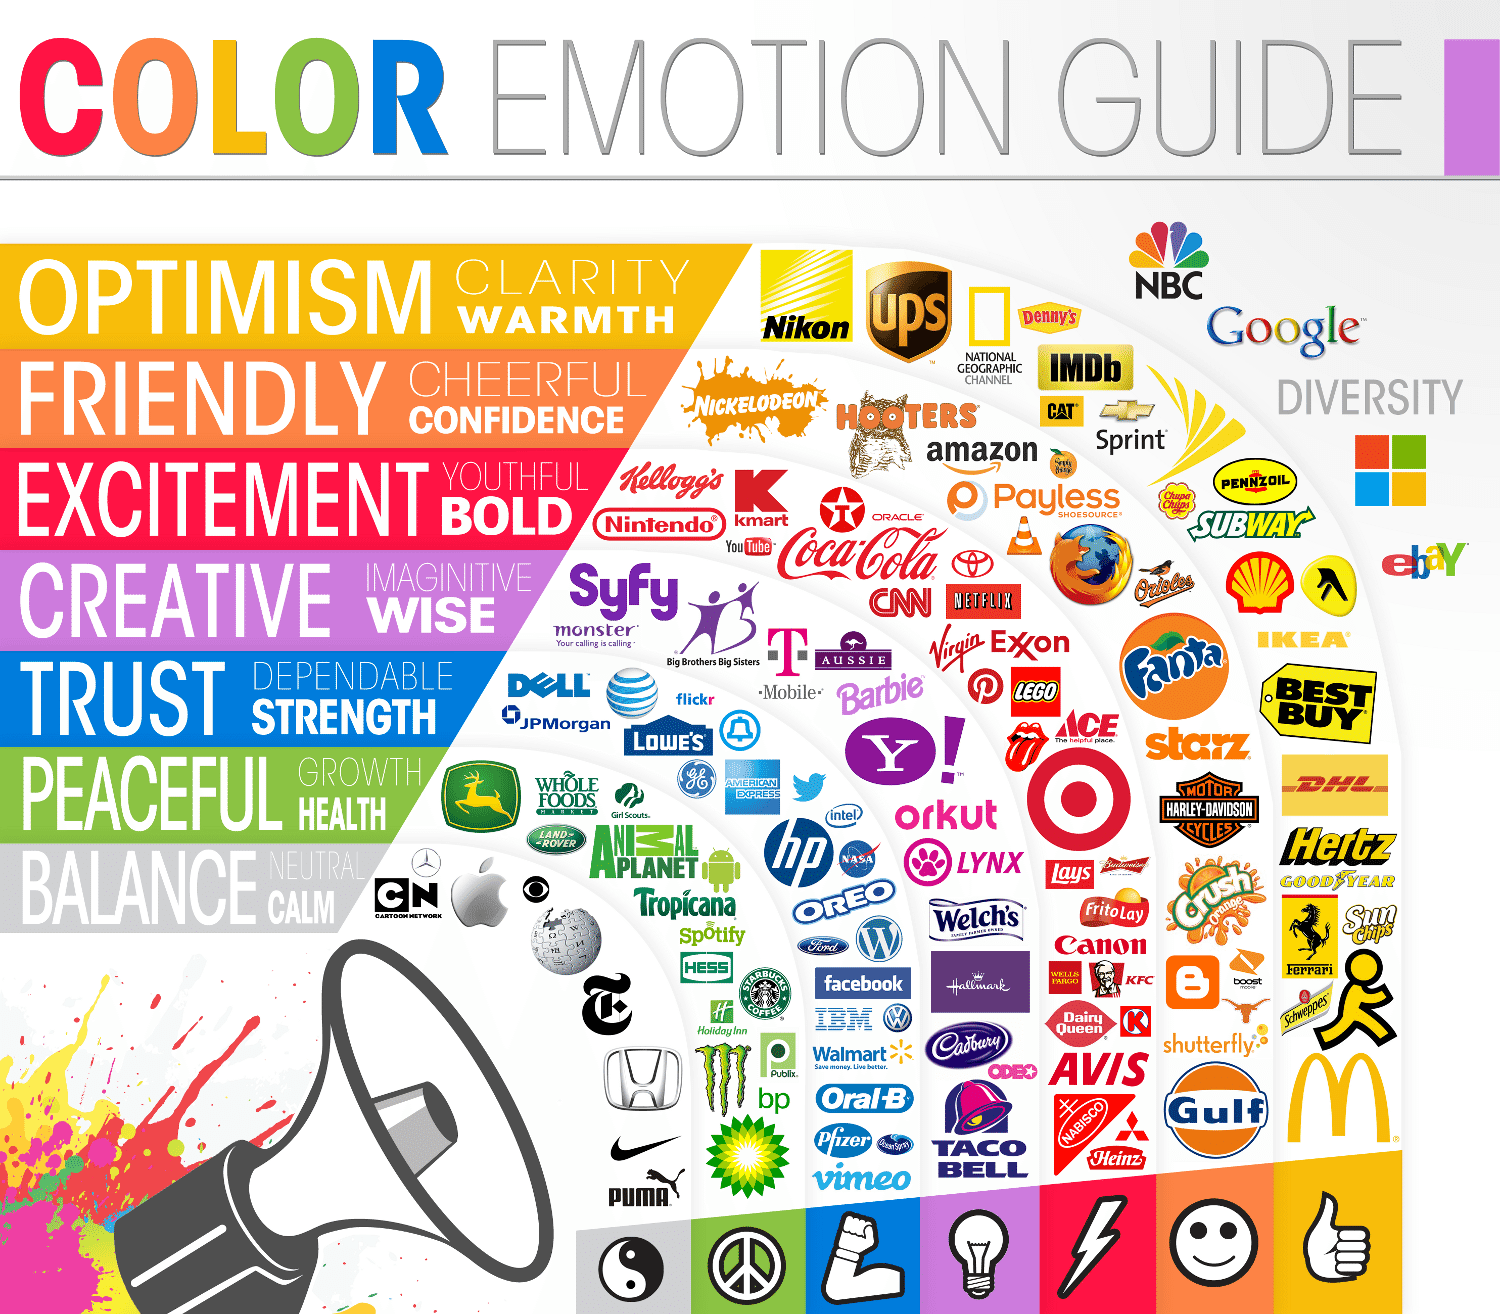 Use Color Effectively